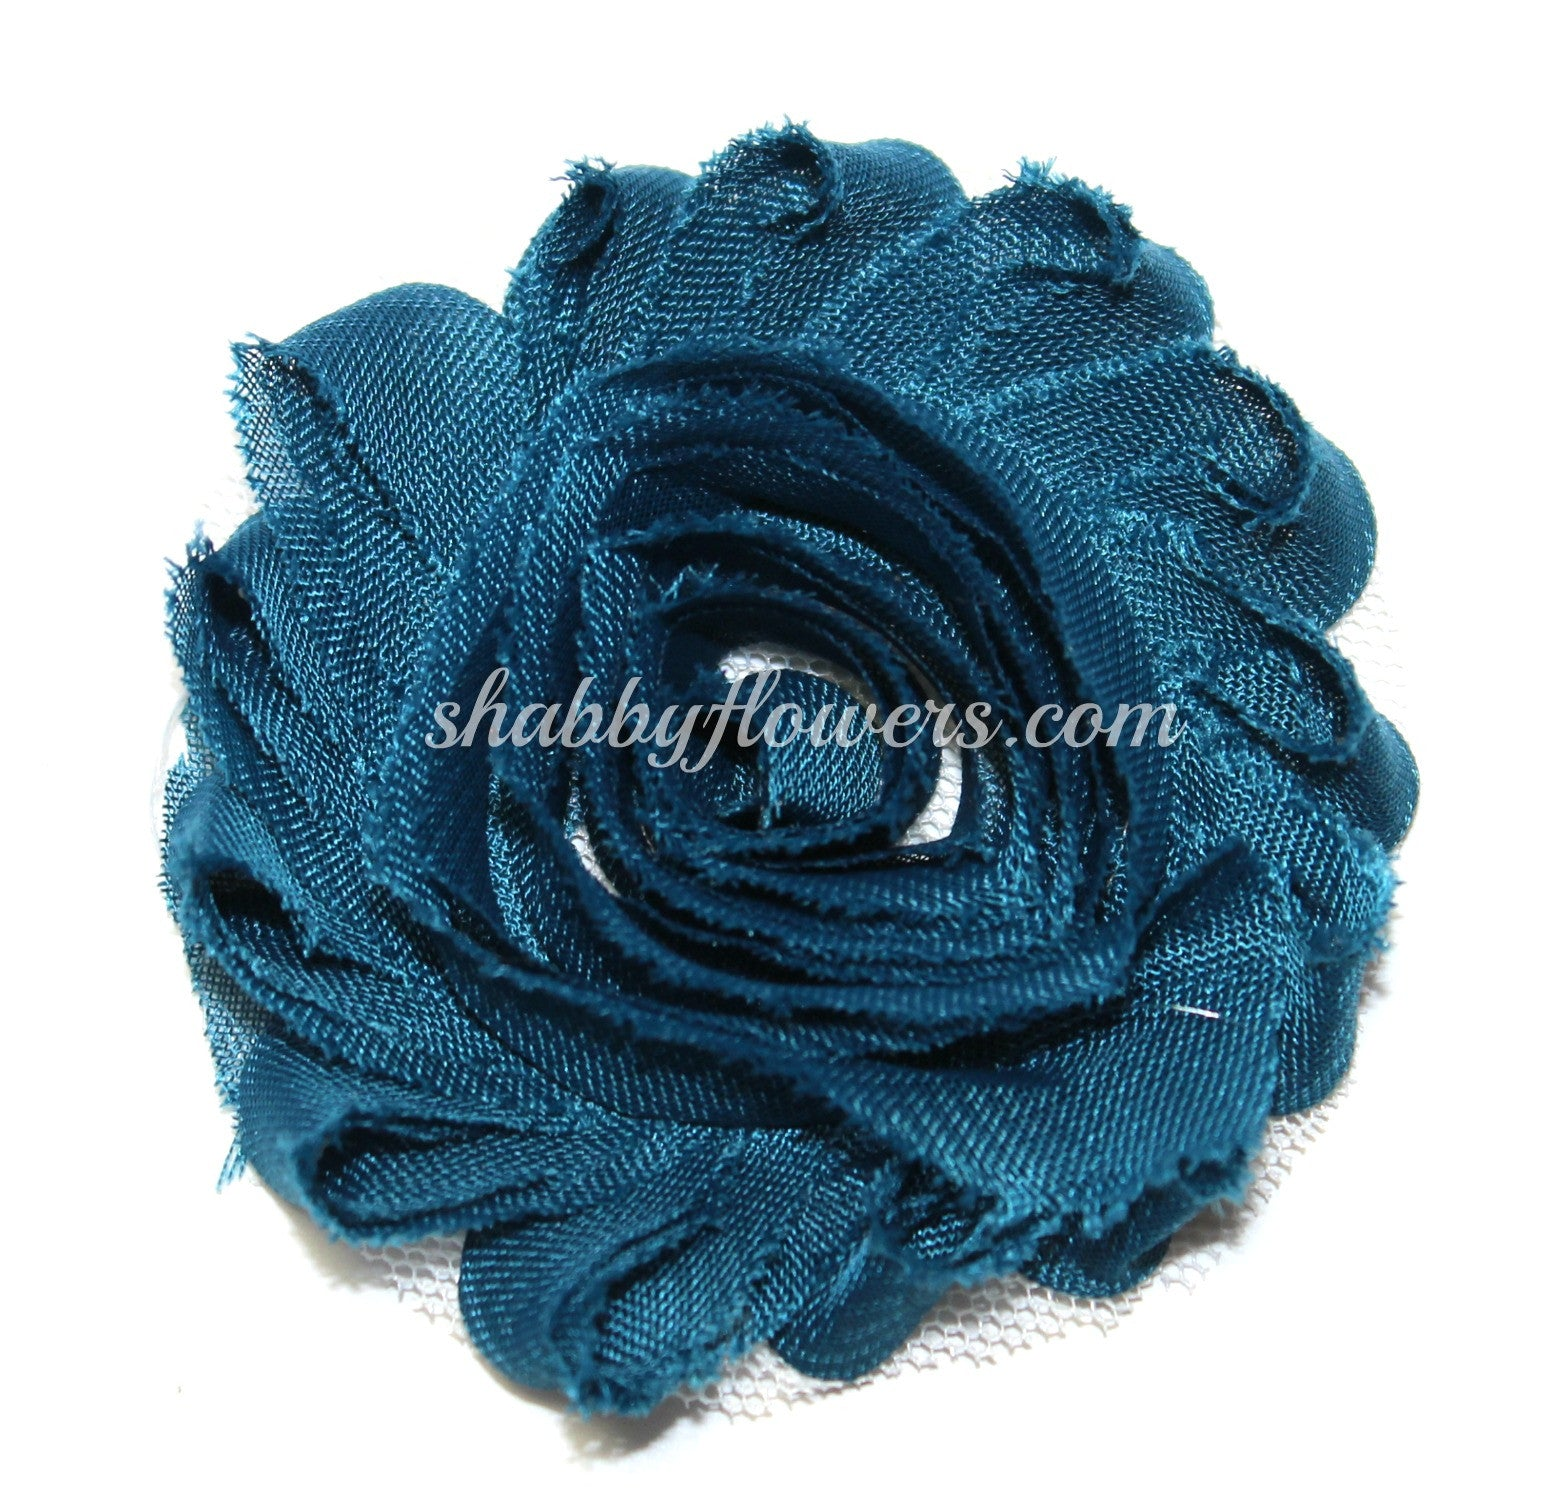 Shabby Flower - Teal - shabbyflowers.com